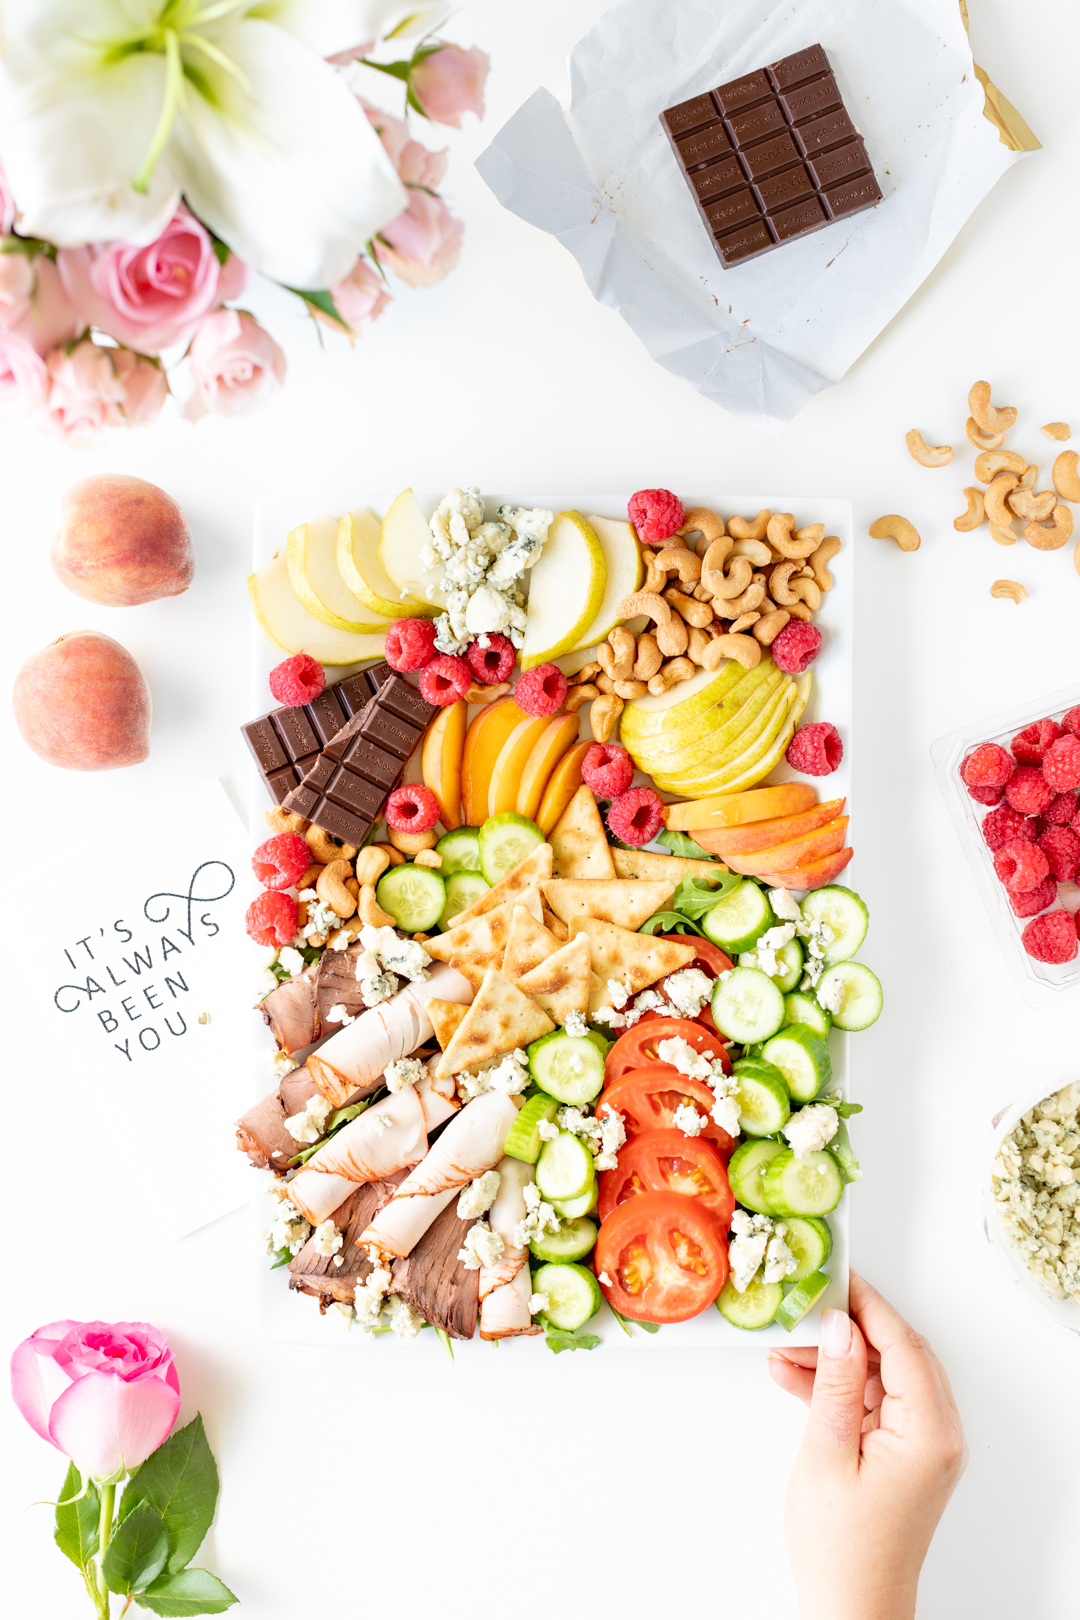 snack tray with fresh chopped vegetables, fruits, meats and cheeses.